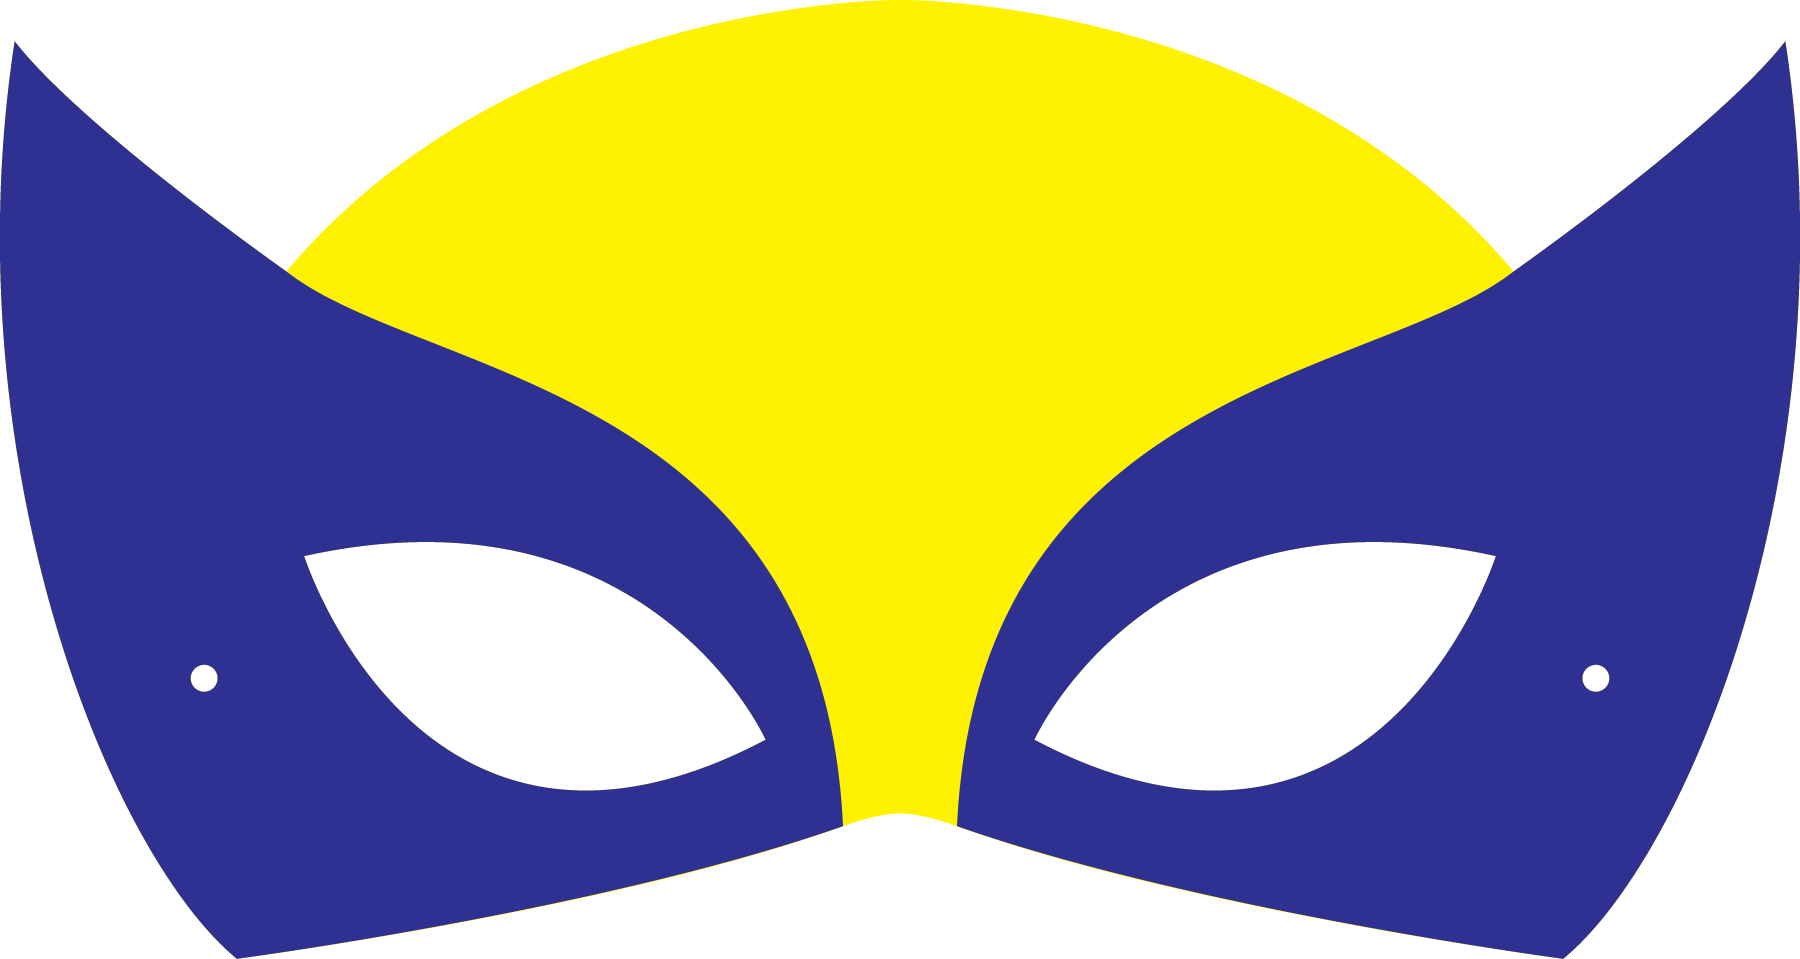 Wolverine clipart mask Them To settings glance print